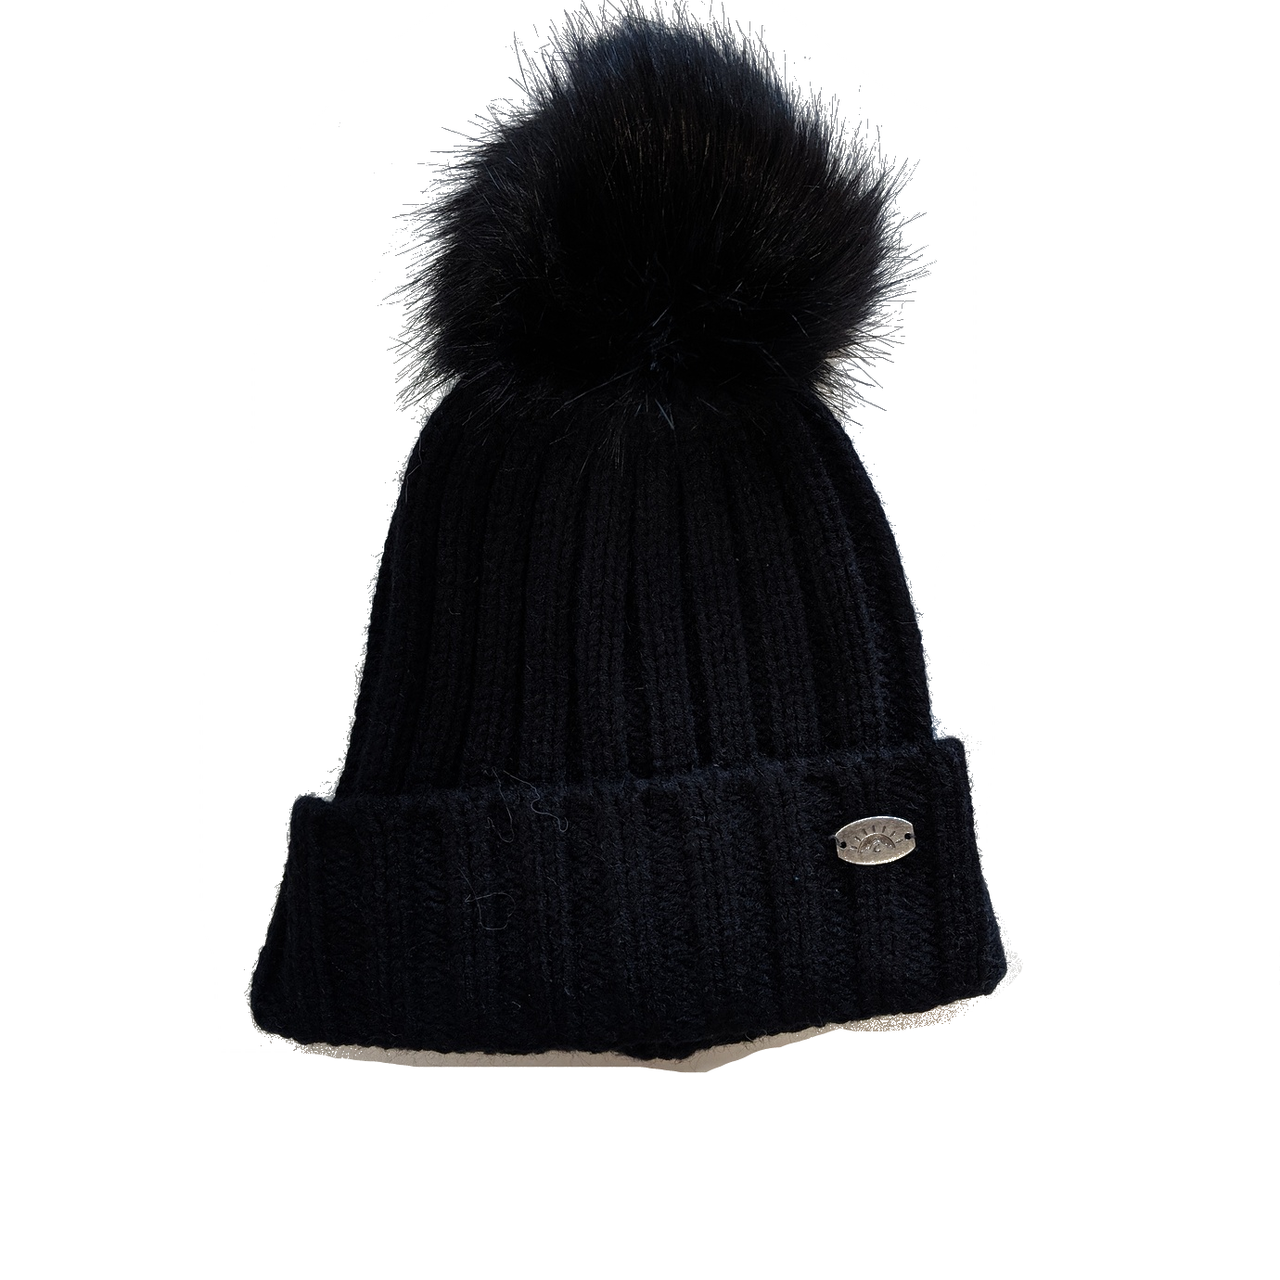 Calikids Pom Pom Hat - Black - Active Baby Canadian Online Baby Store f1d2e451b90